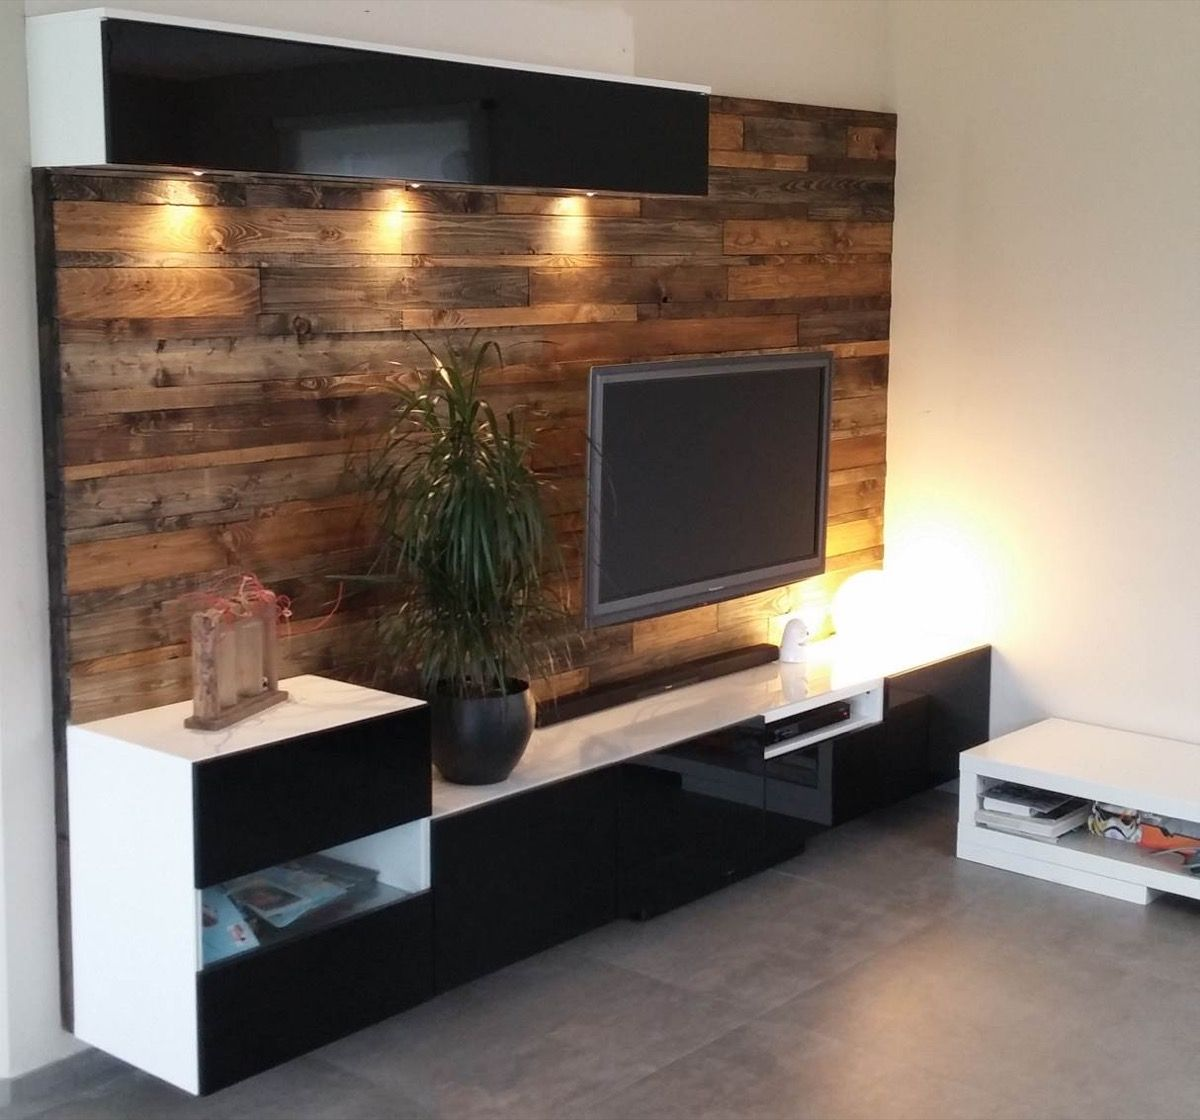 papa went to wood stock ikea hacks pinterest. Black Bedroom Furniture Sets. Home Design Ideas